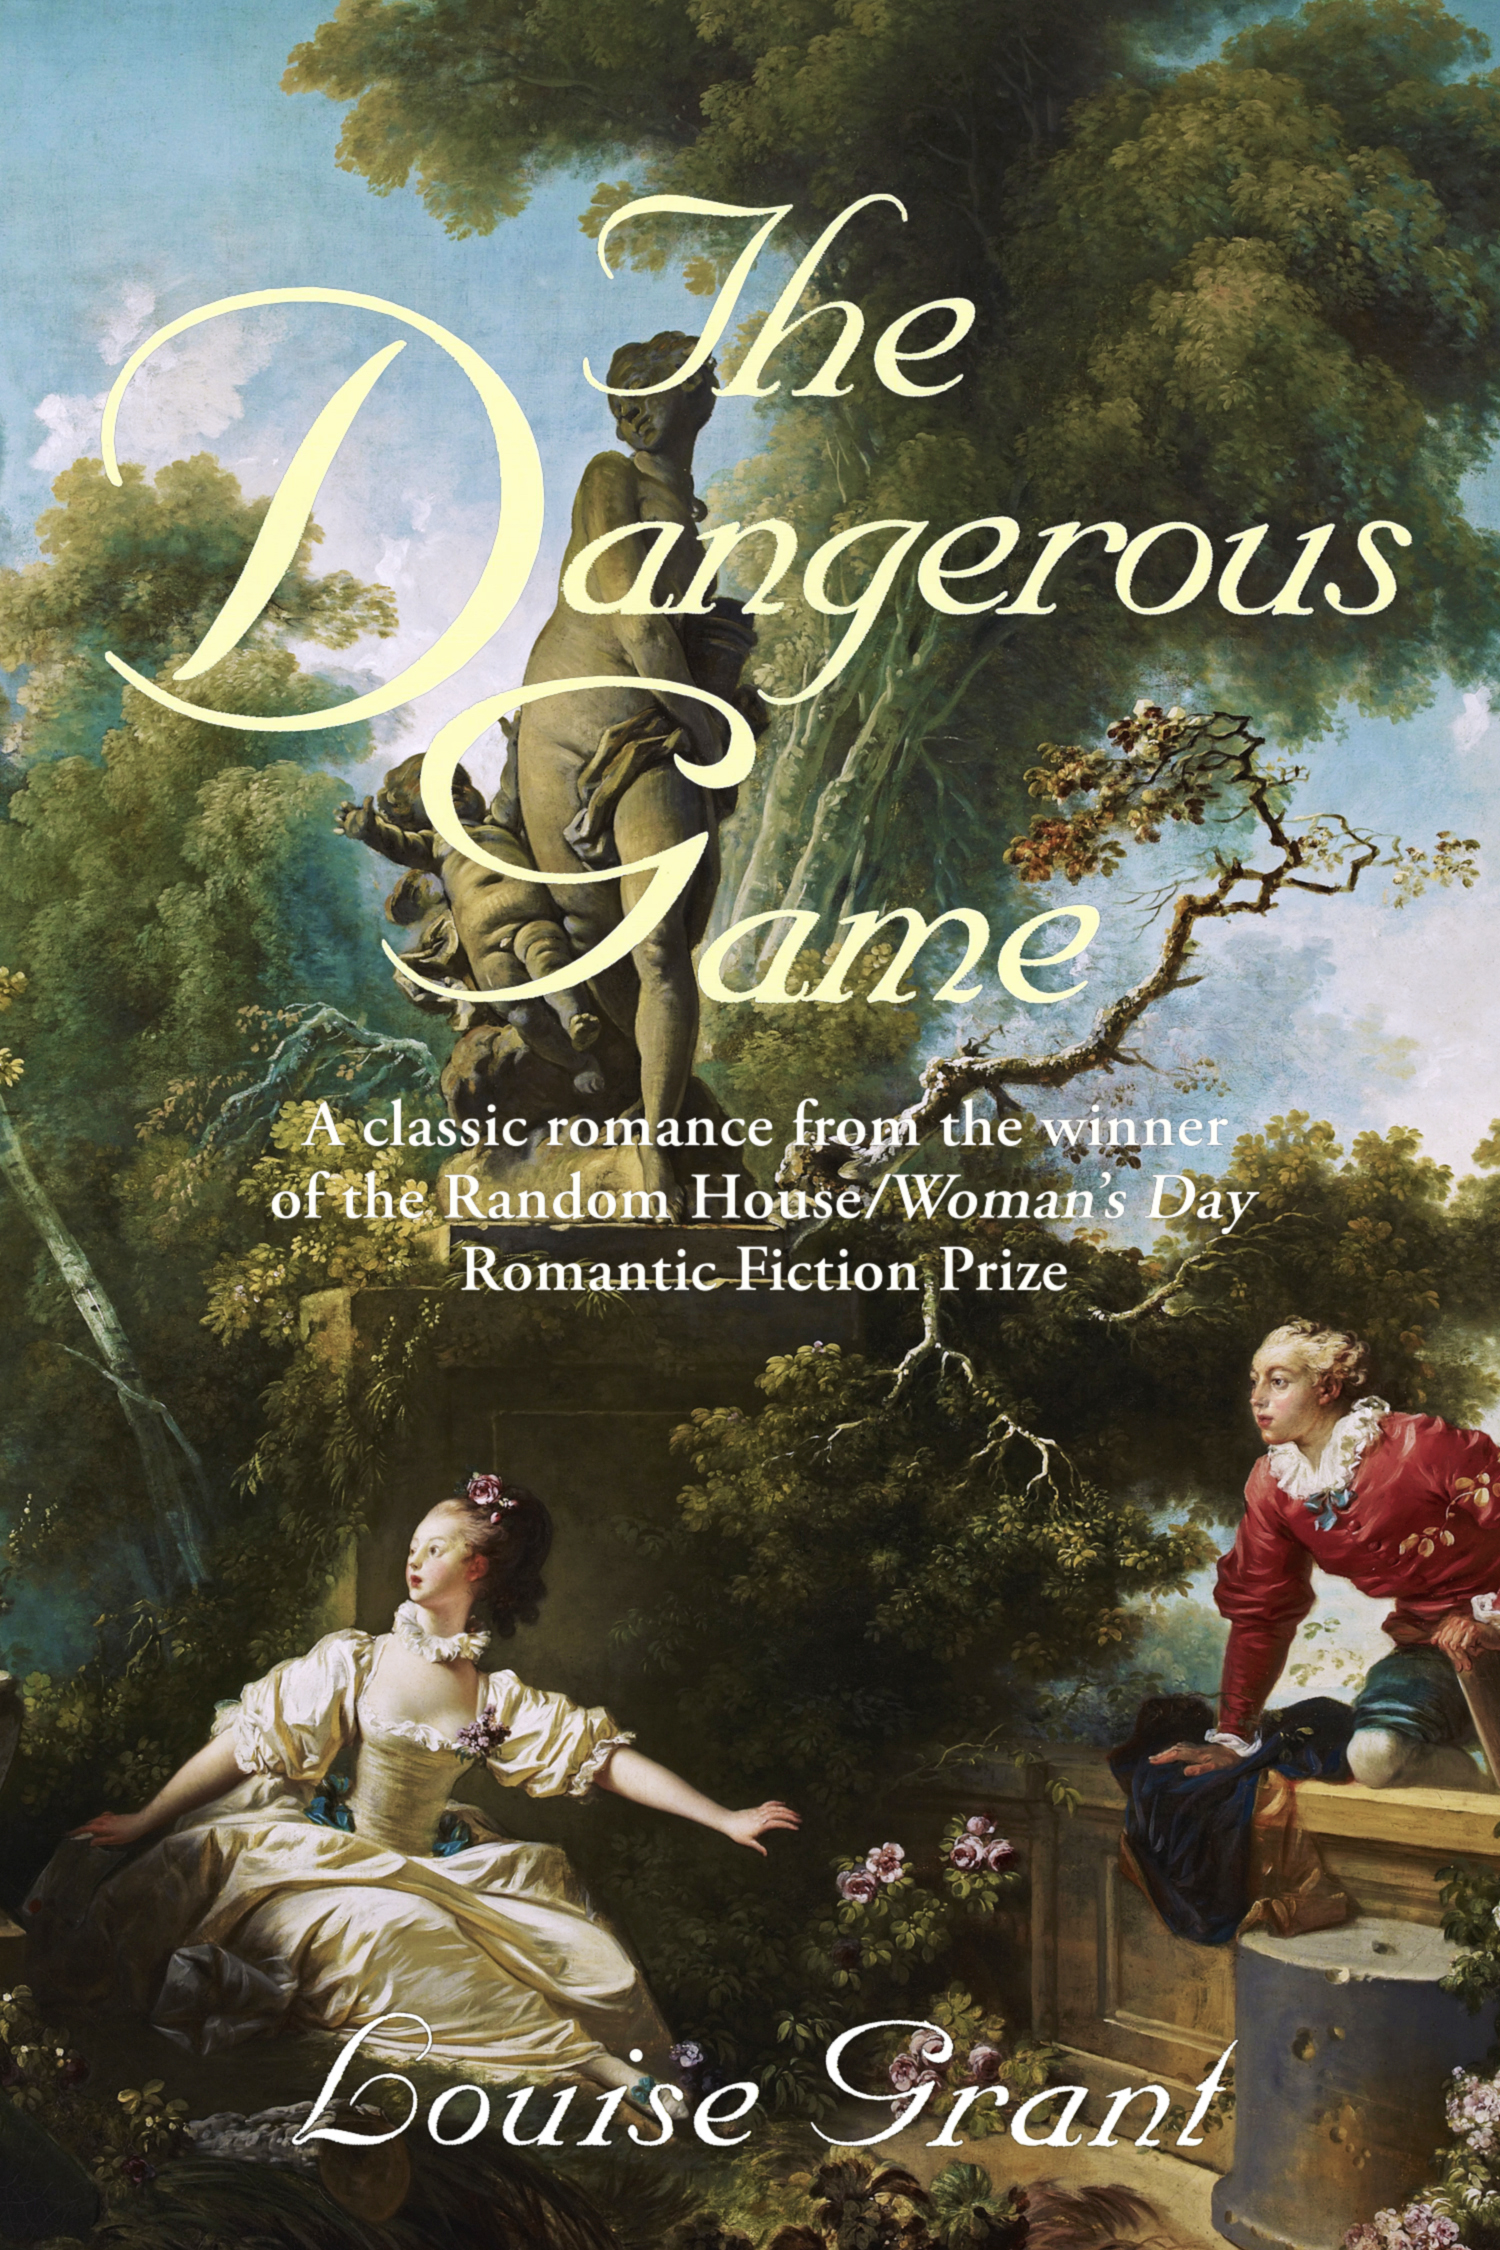 The Dangerous Game by Louise Grant aka Lucinda Brant—book cover